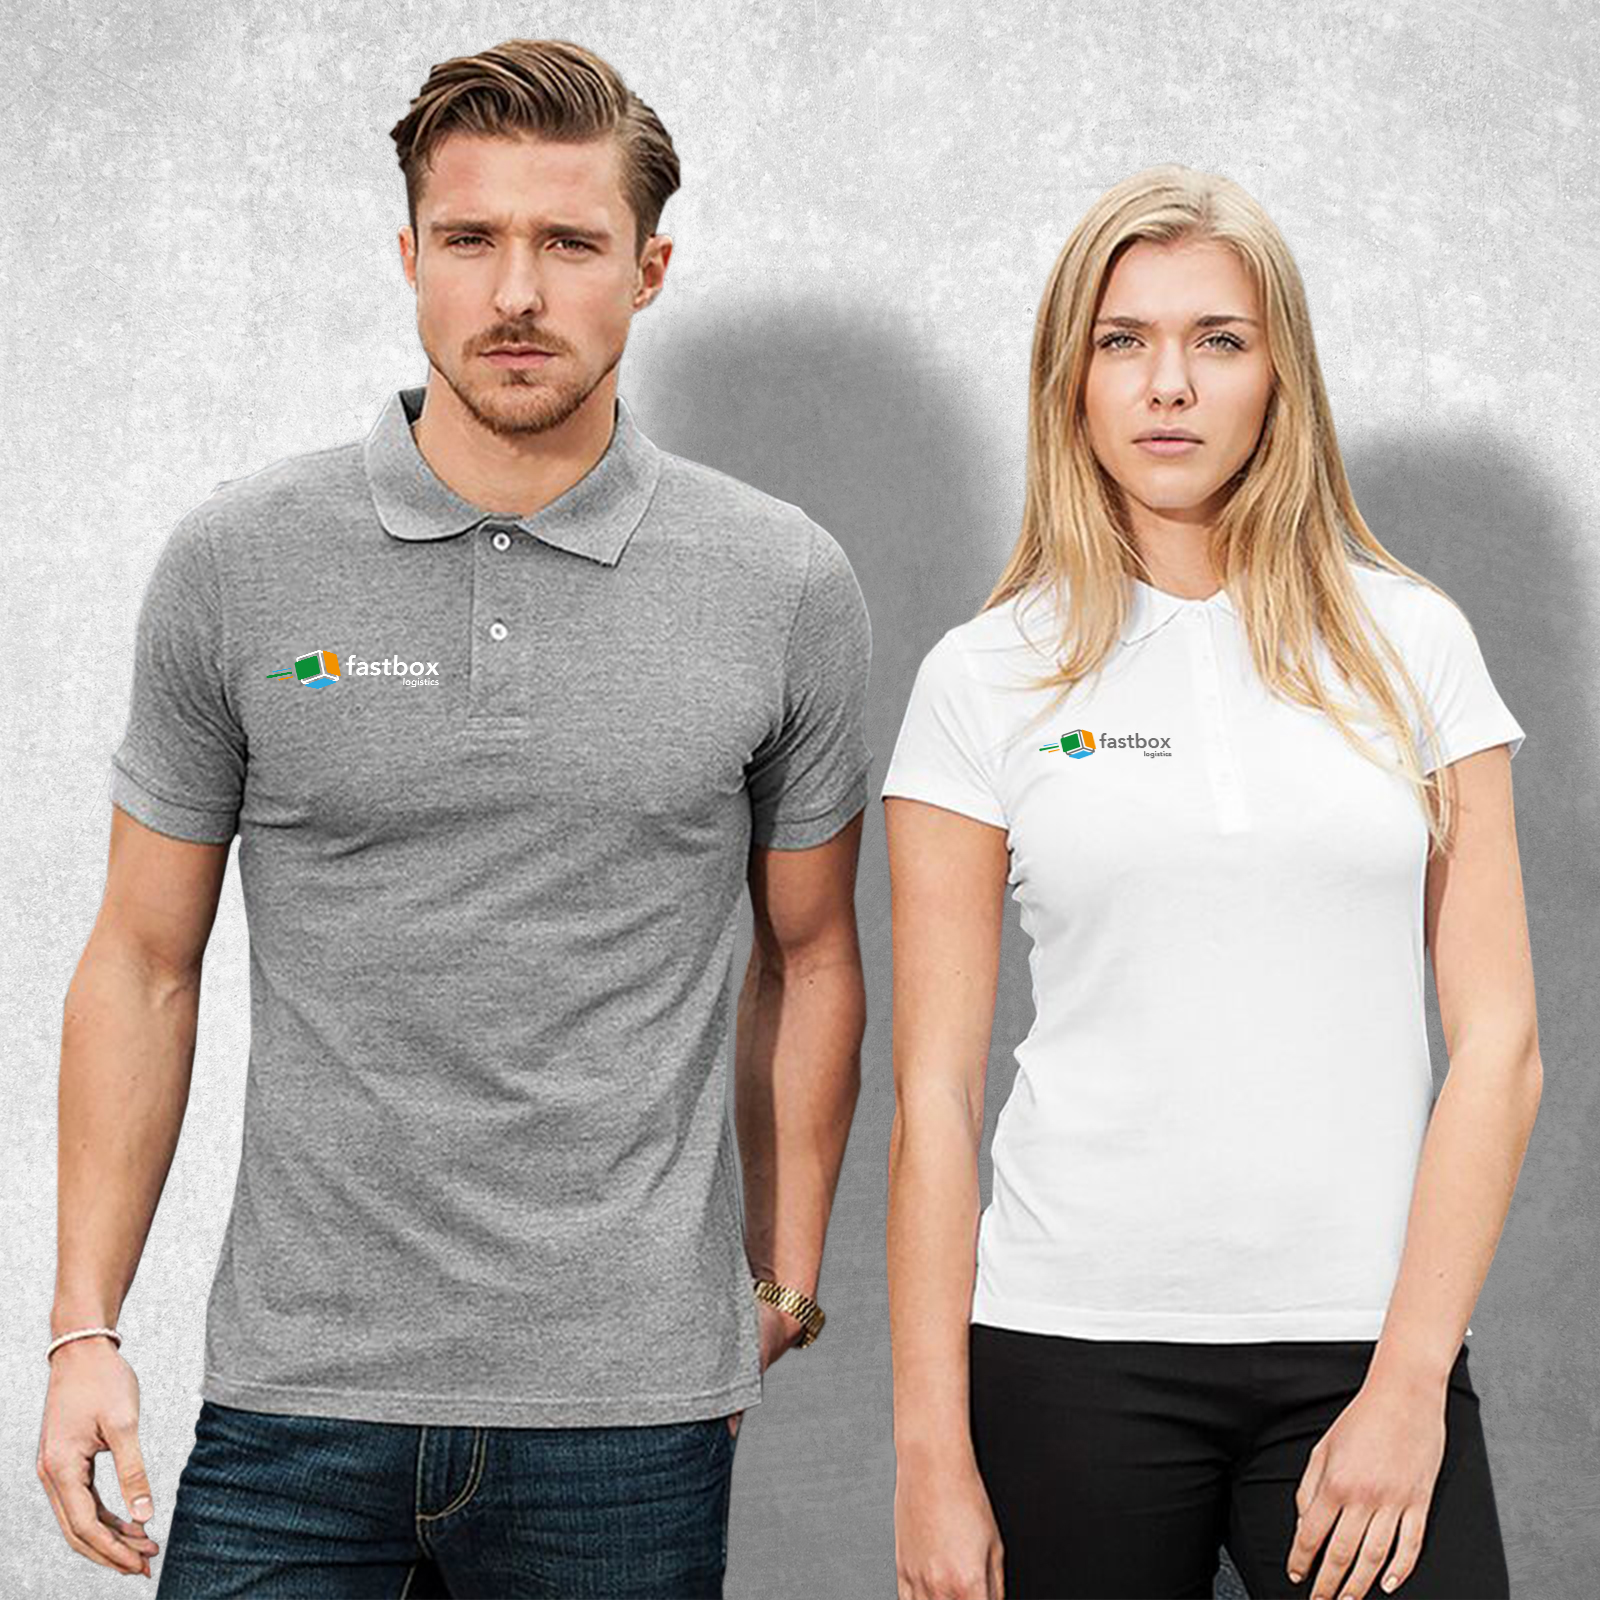 Man And Woman wearing embroided Workwear